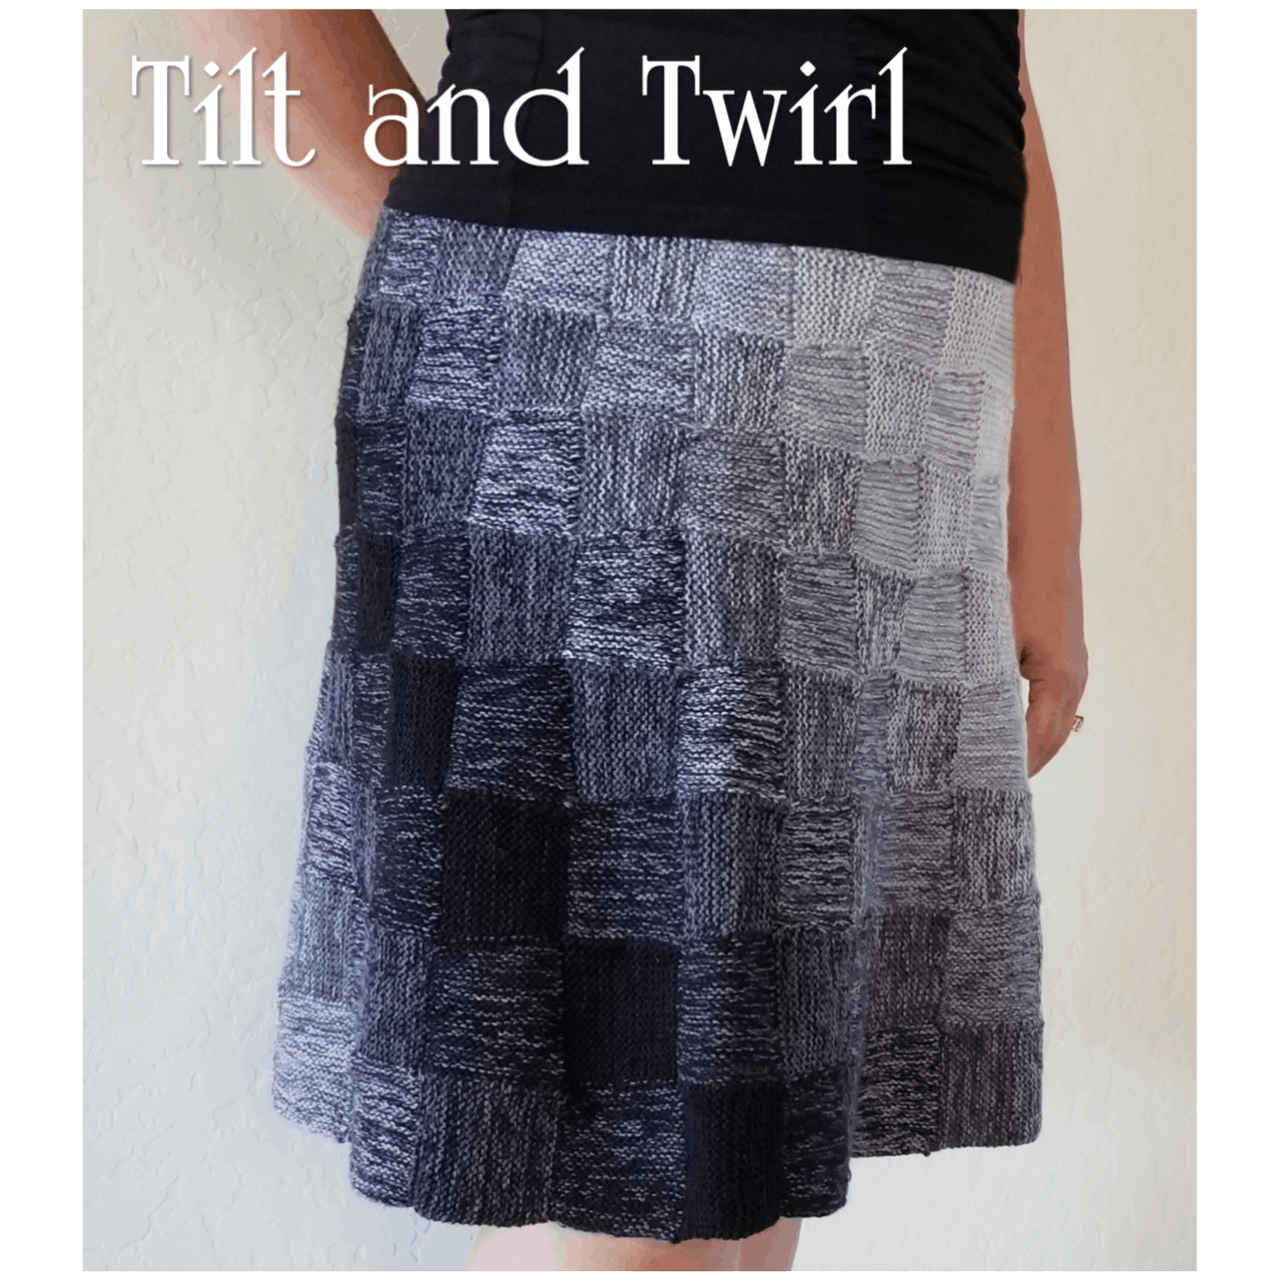 Tilt and Twirl Skirt Kit